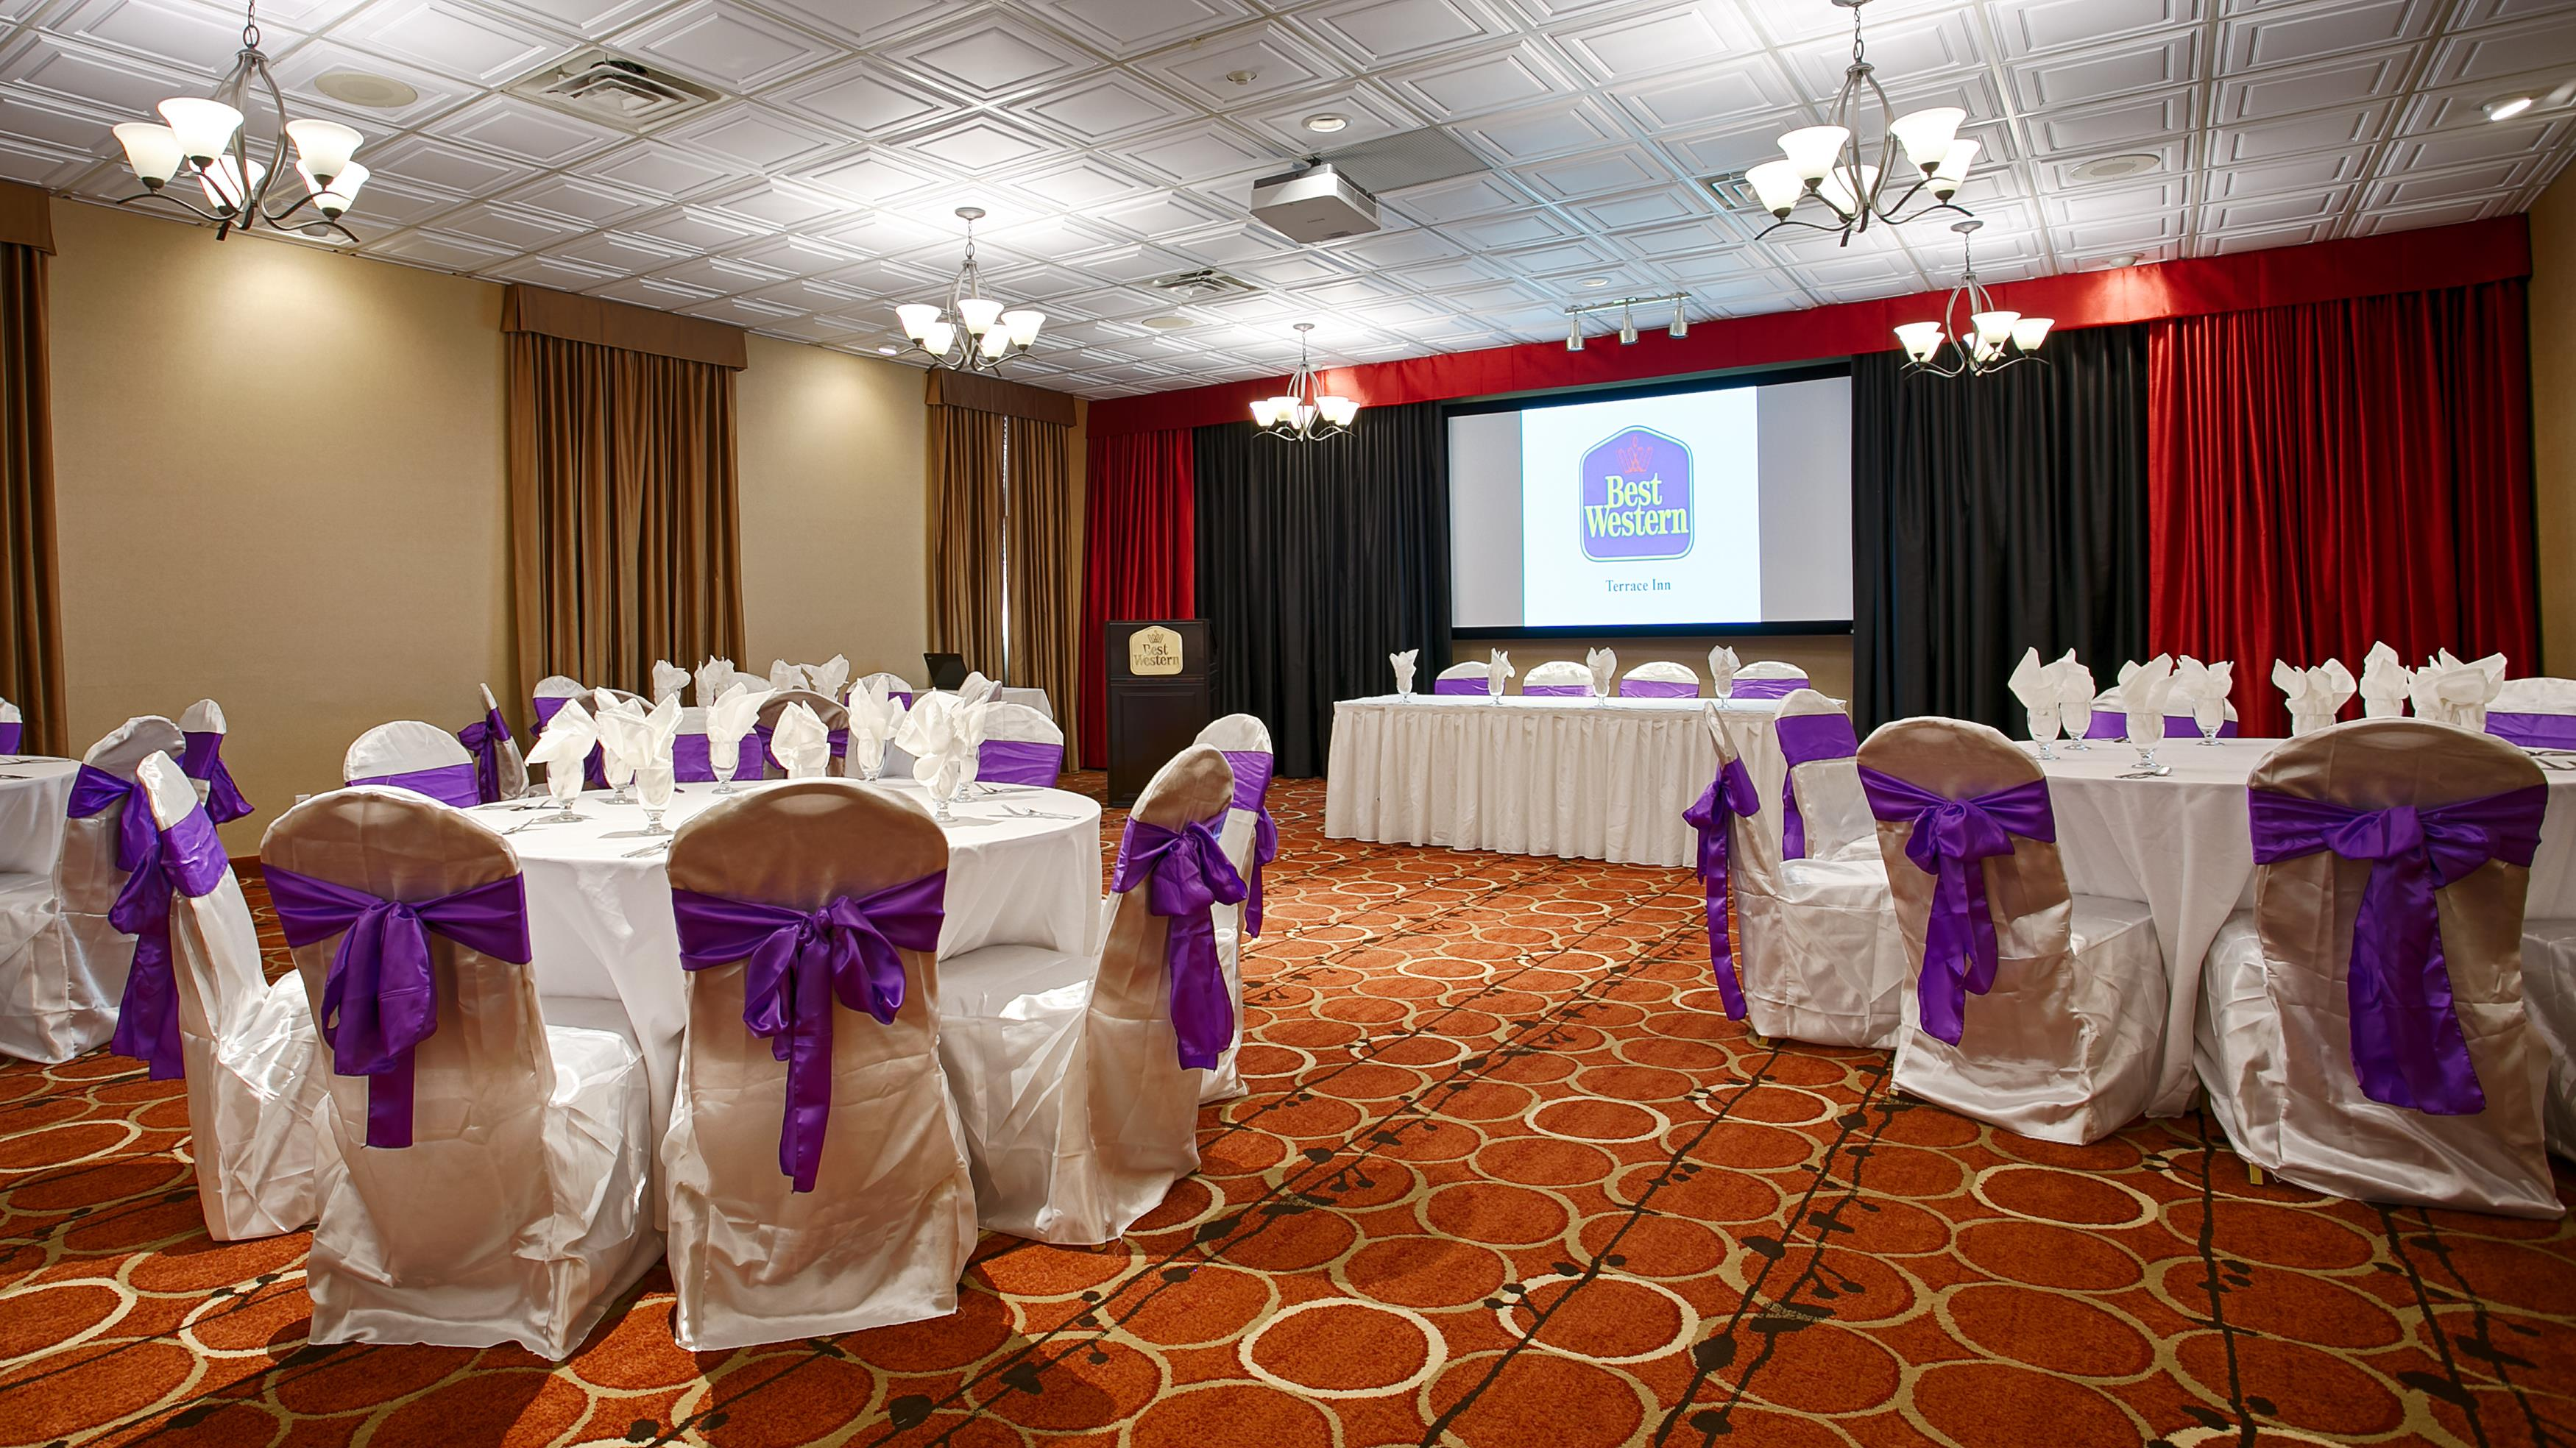 Best Western Terrace Inn in Terrace: Wedding Event